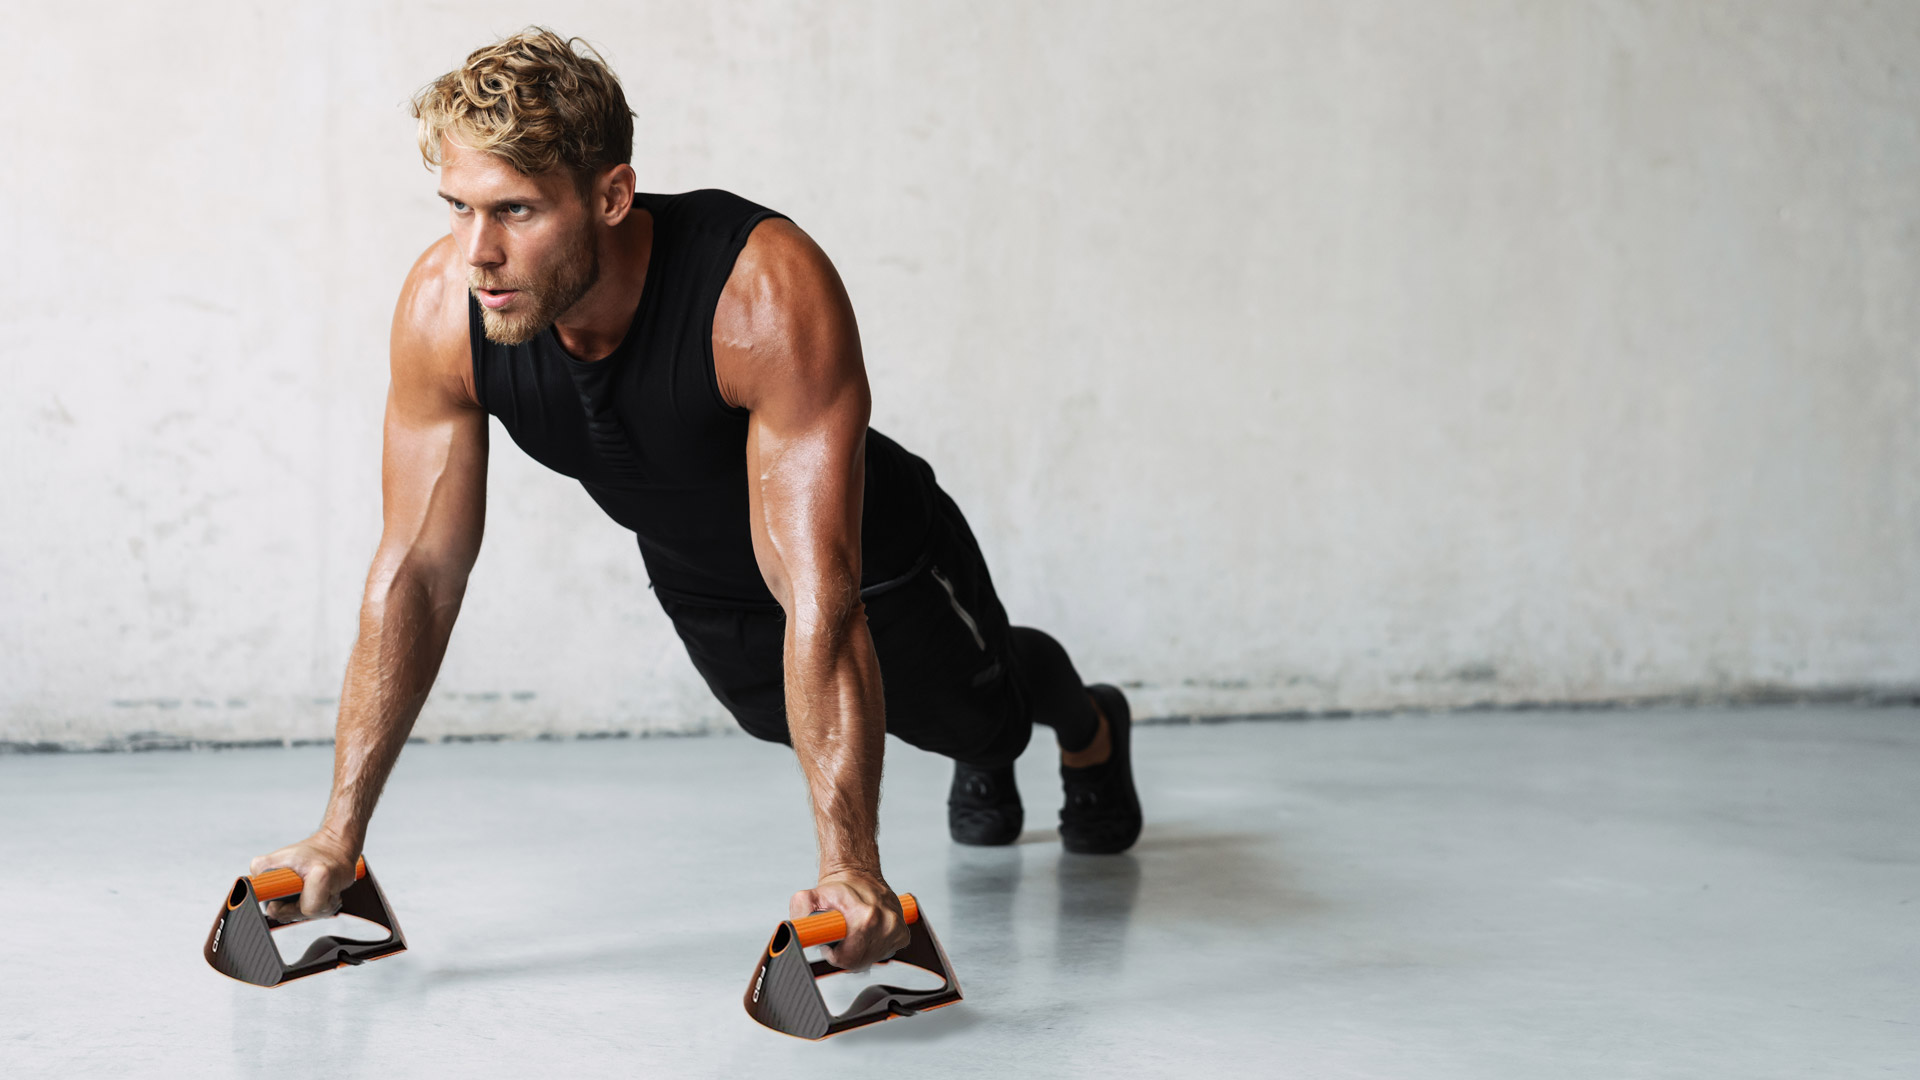 fitness athlete using push-up handles to improve performance home-gym equipment